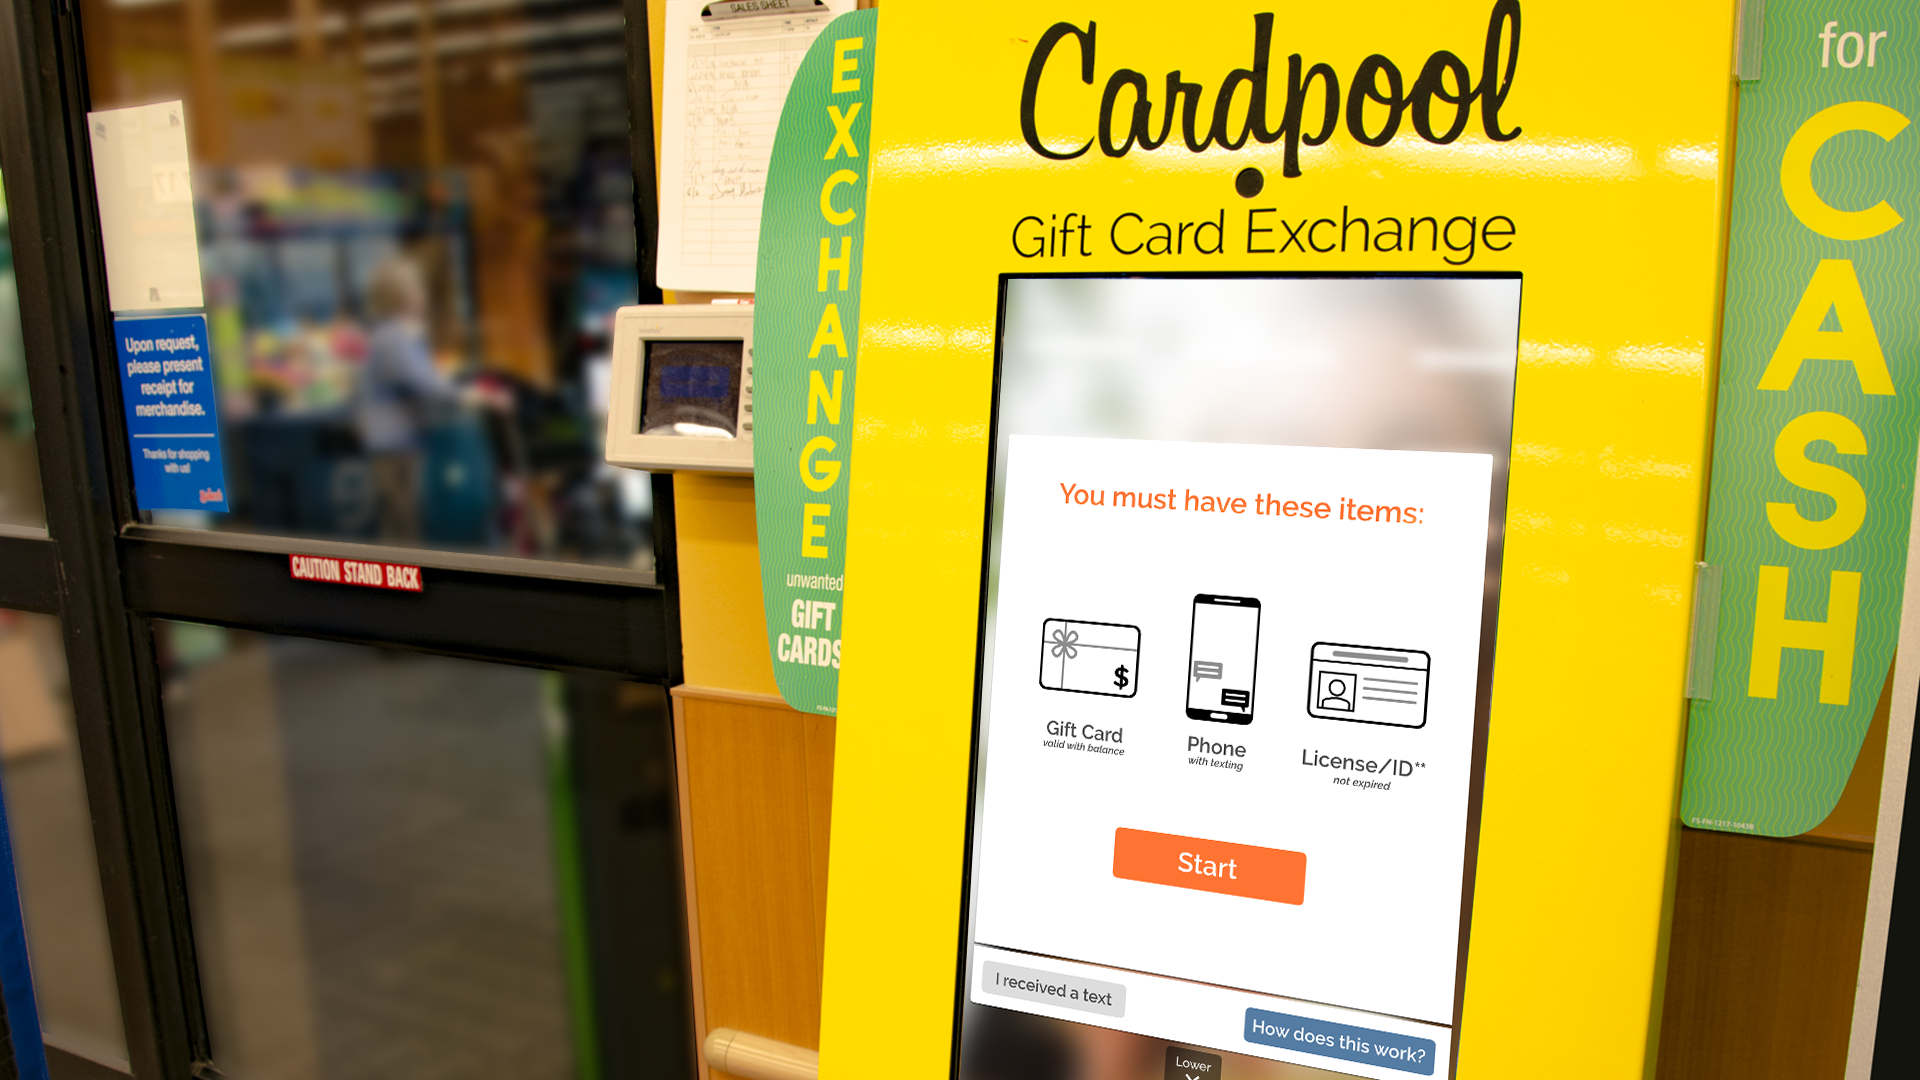 Cardpool's kiosks allow customers to exchange unused gift cards for money.